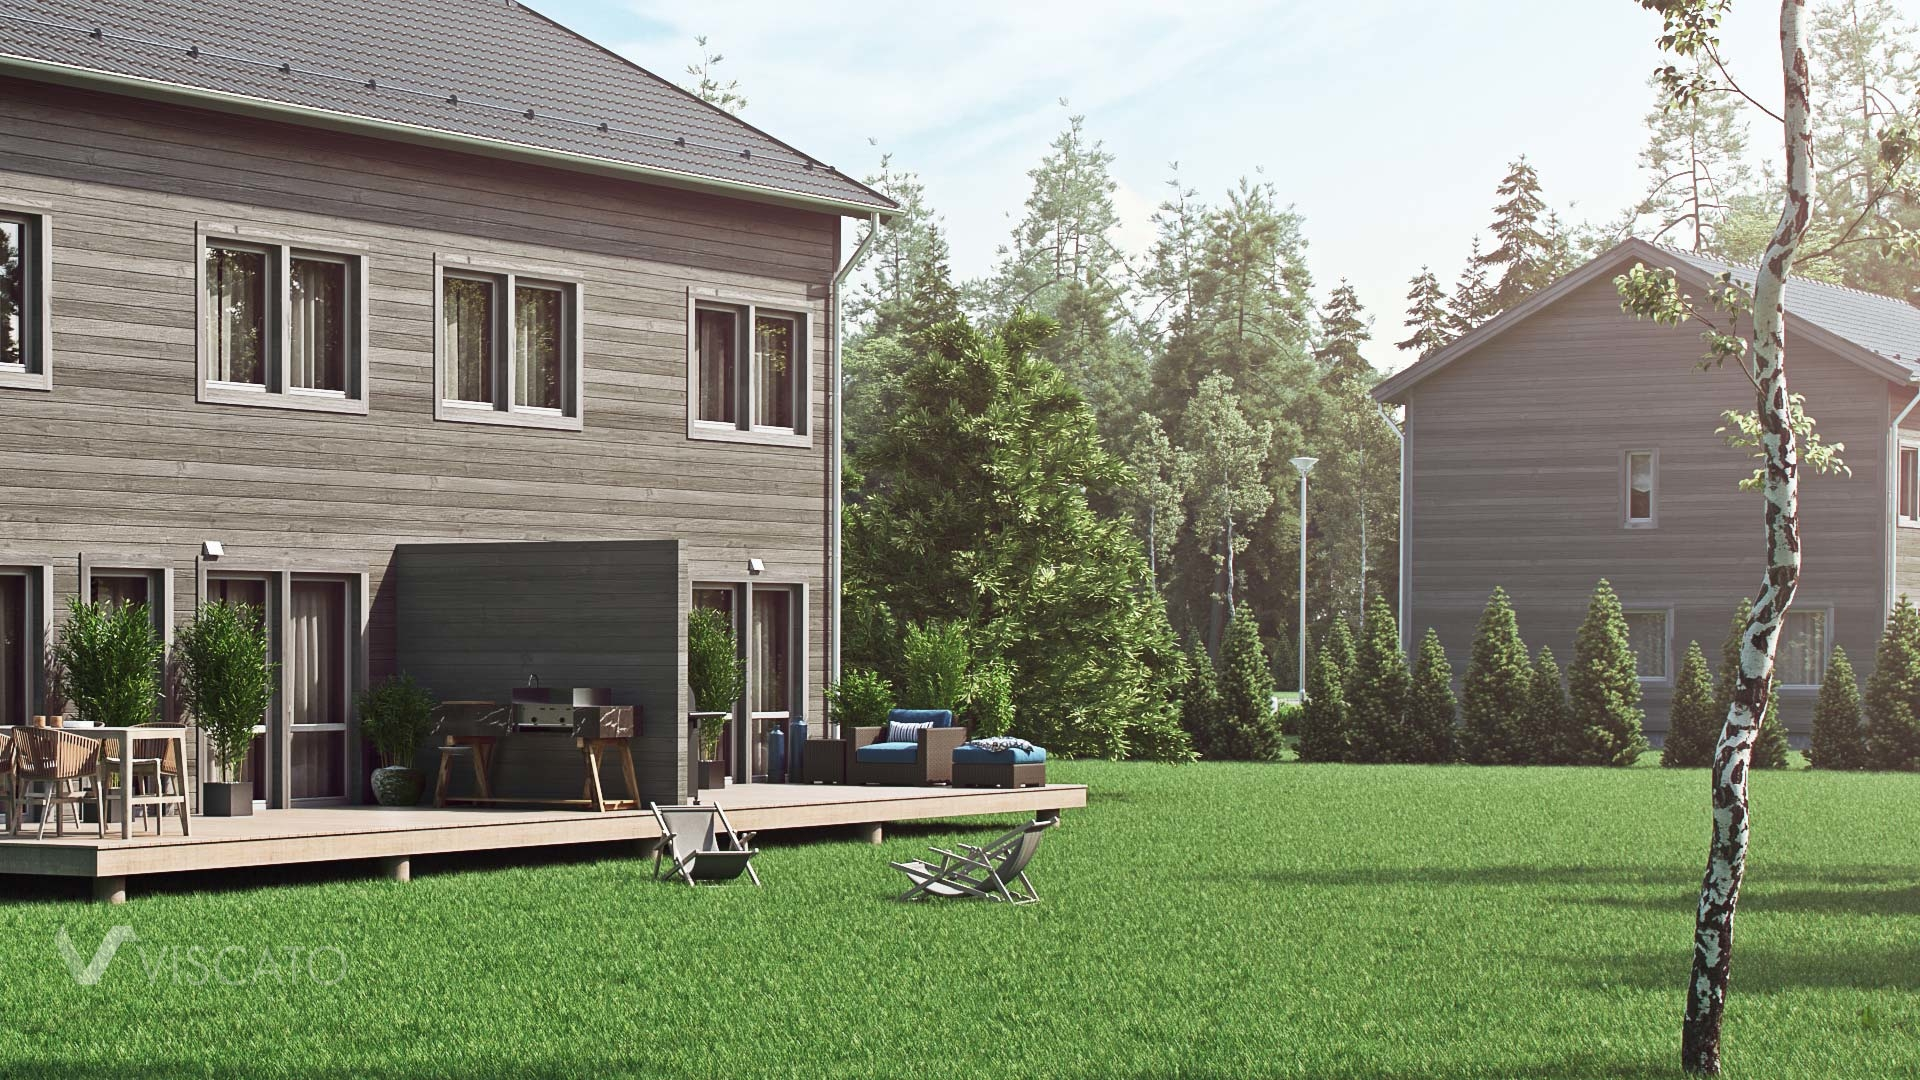 semi detached house with wooden siding 3D visualization- garden view